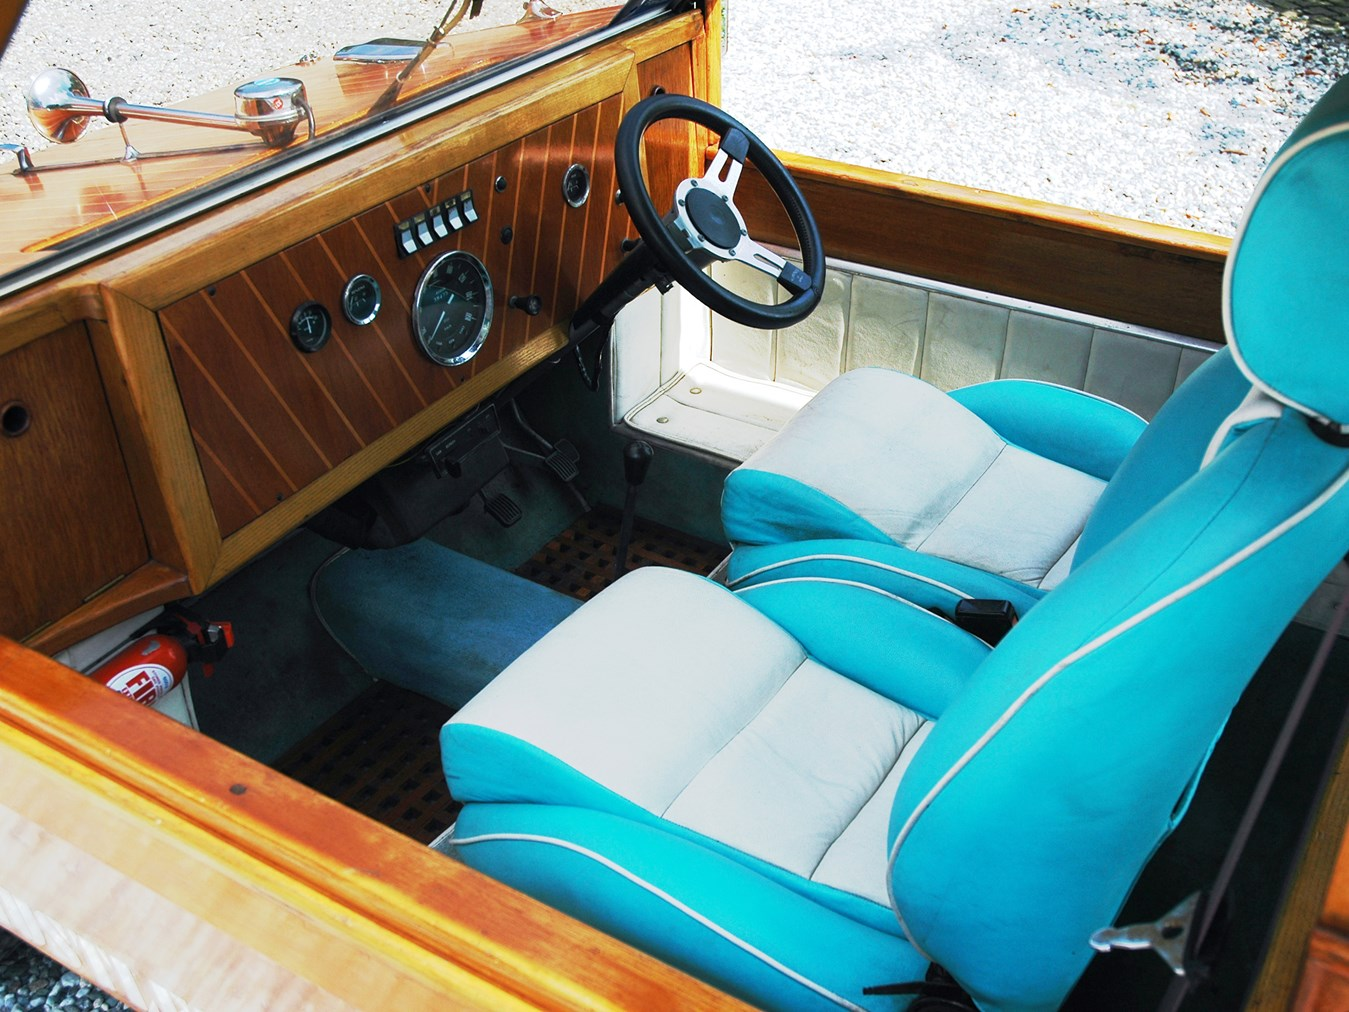 The wood dashboard is not just wood veneer. It's solid wood.